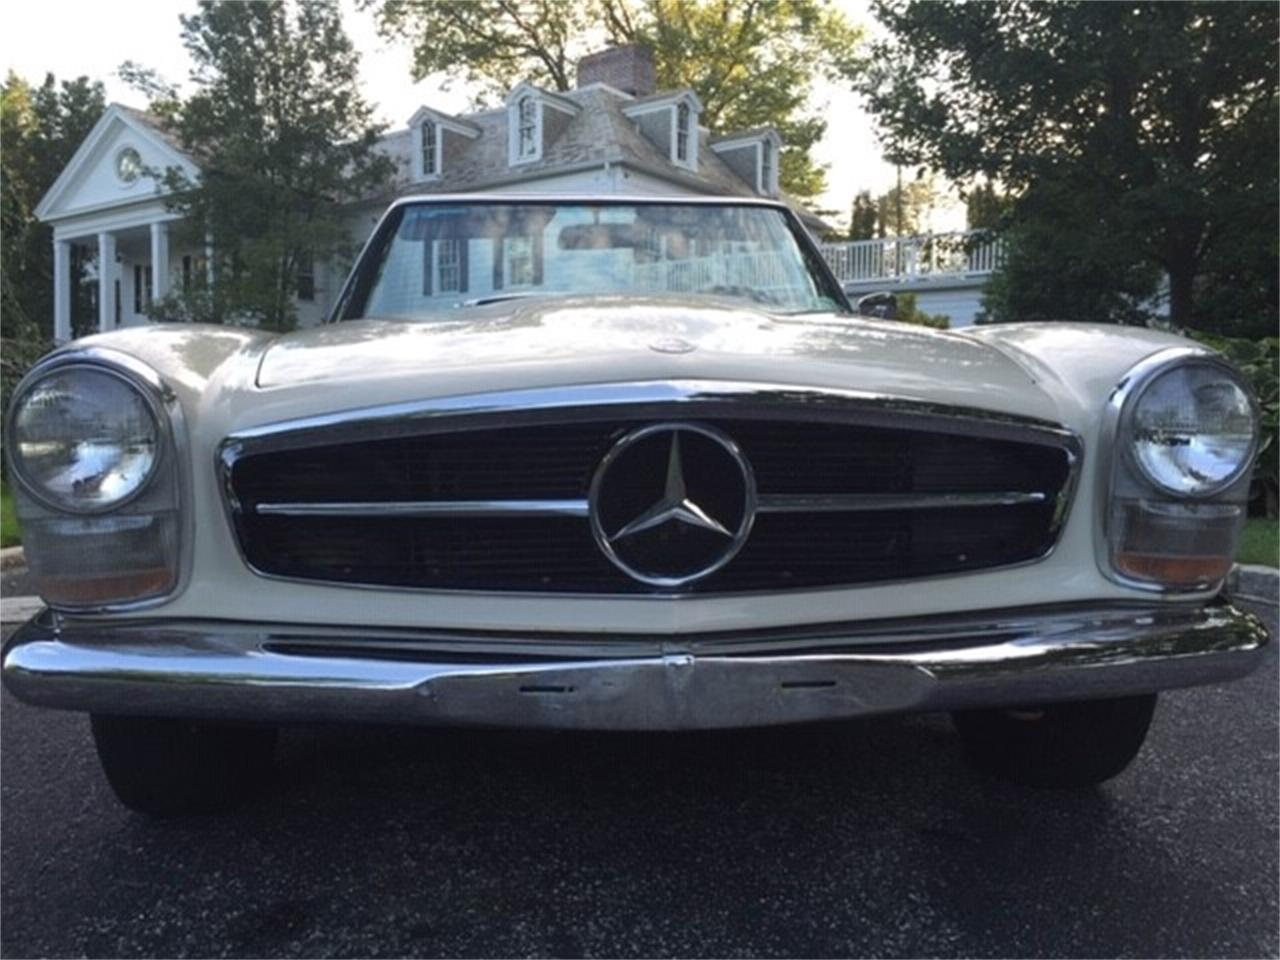 Large Picture of 1966 Mercedes-Benz 230SL located in Sag Harbor New York - $55,000.00 Offered by a Private Seller - OUD1